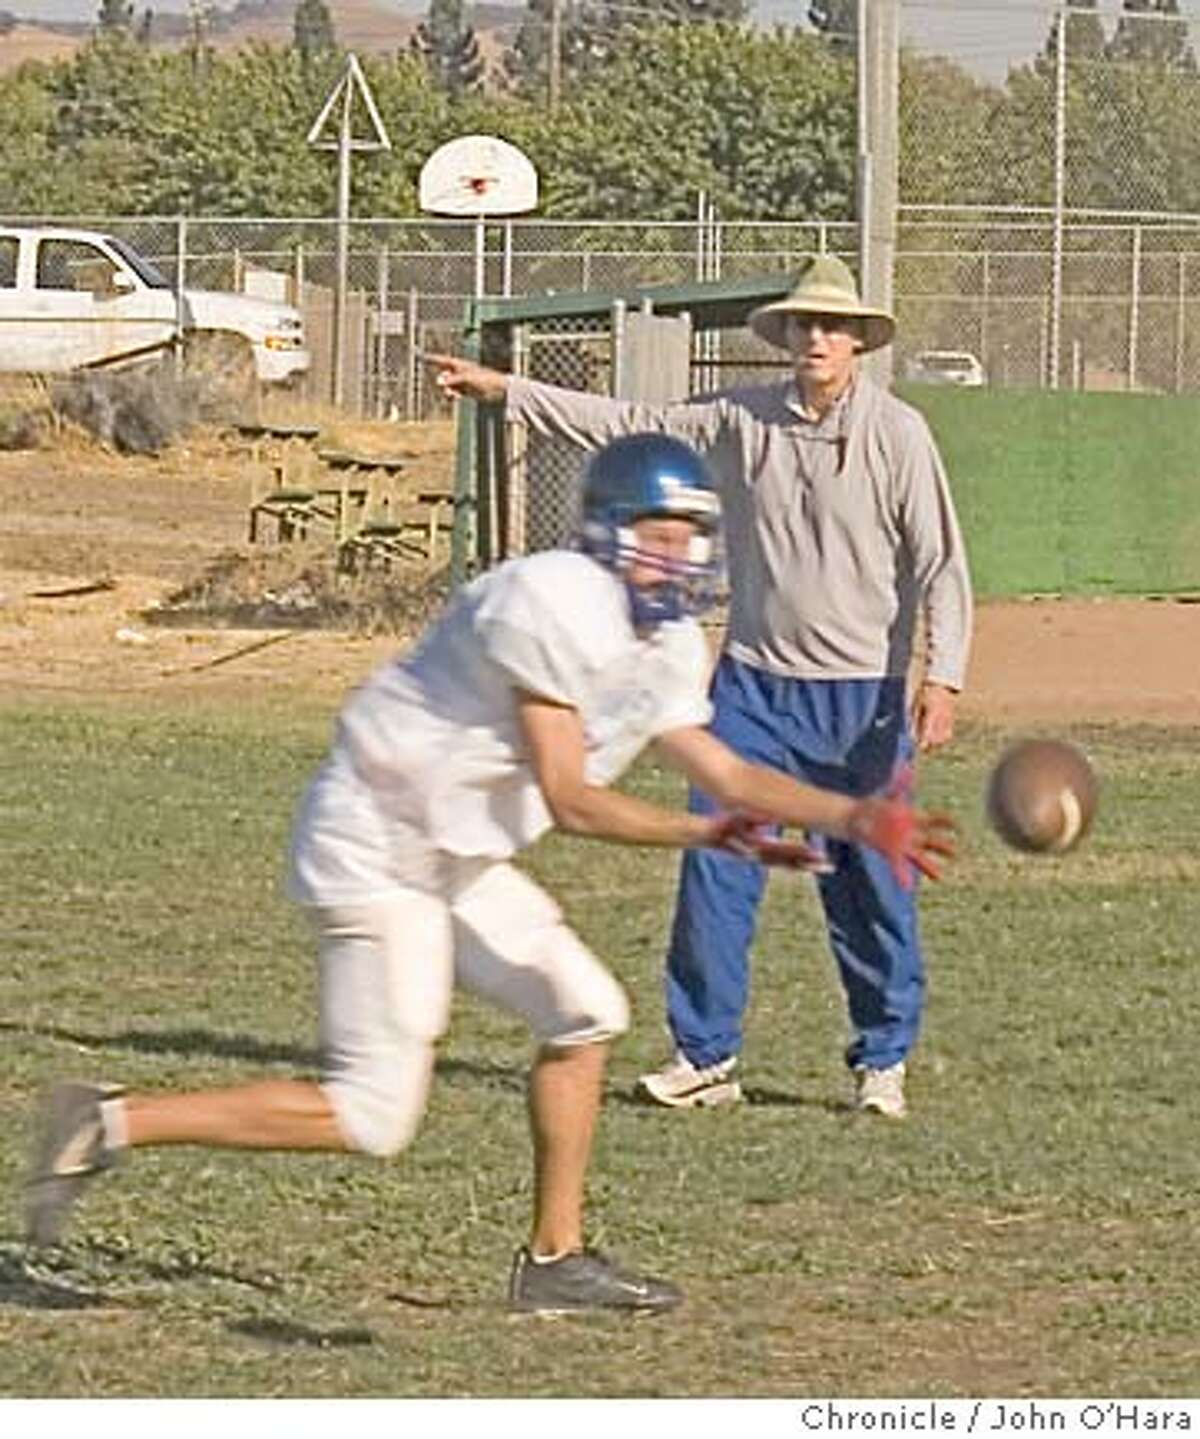 Clayton Valley High School. Jerry Coakley, a 67 year old defensive foot ball coach. A retired warrant officer in the US Marines, at 58 was recalled for the 1st gulf war. He works with Matt Grogan photo/John O'Hara